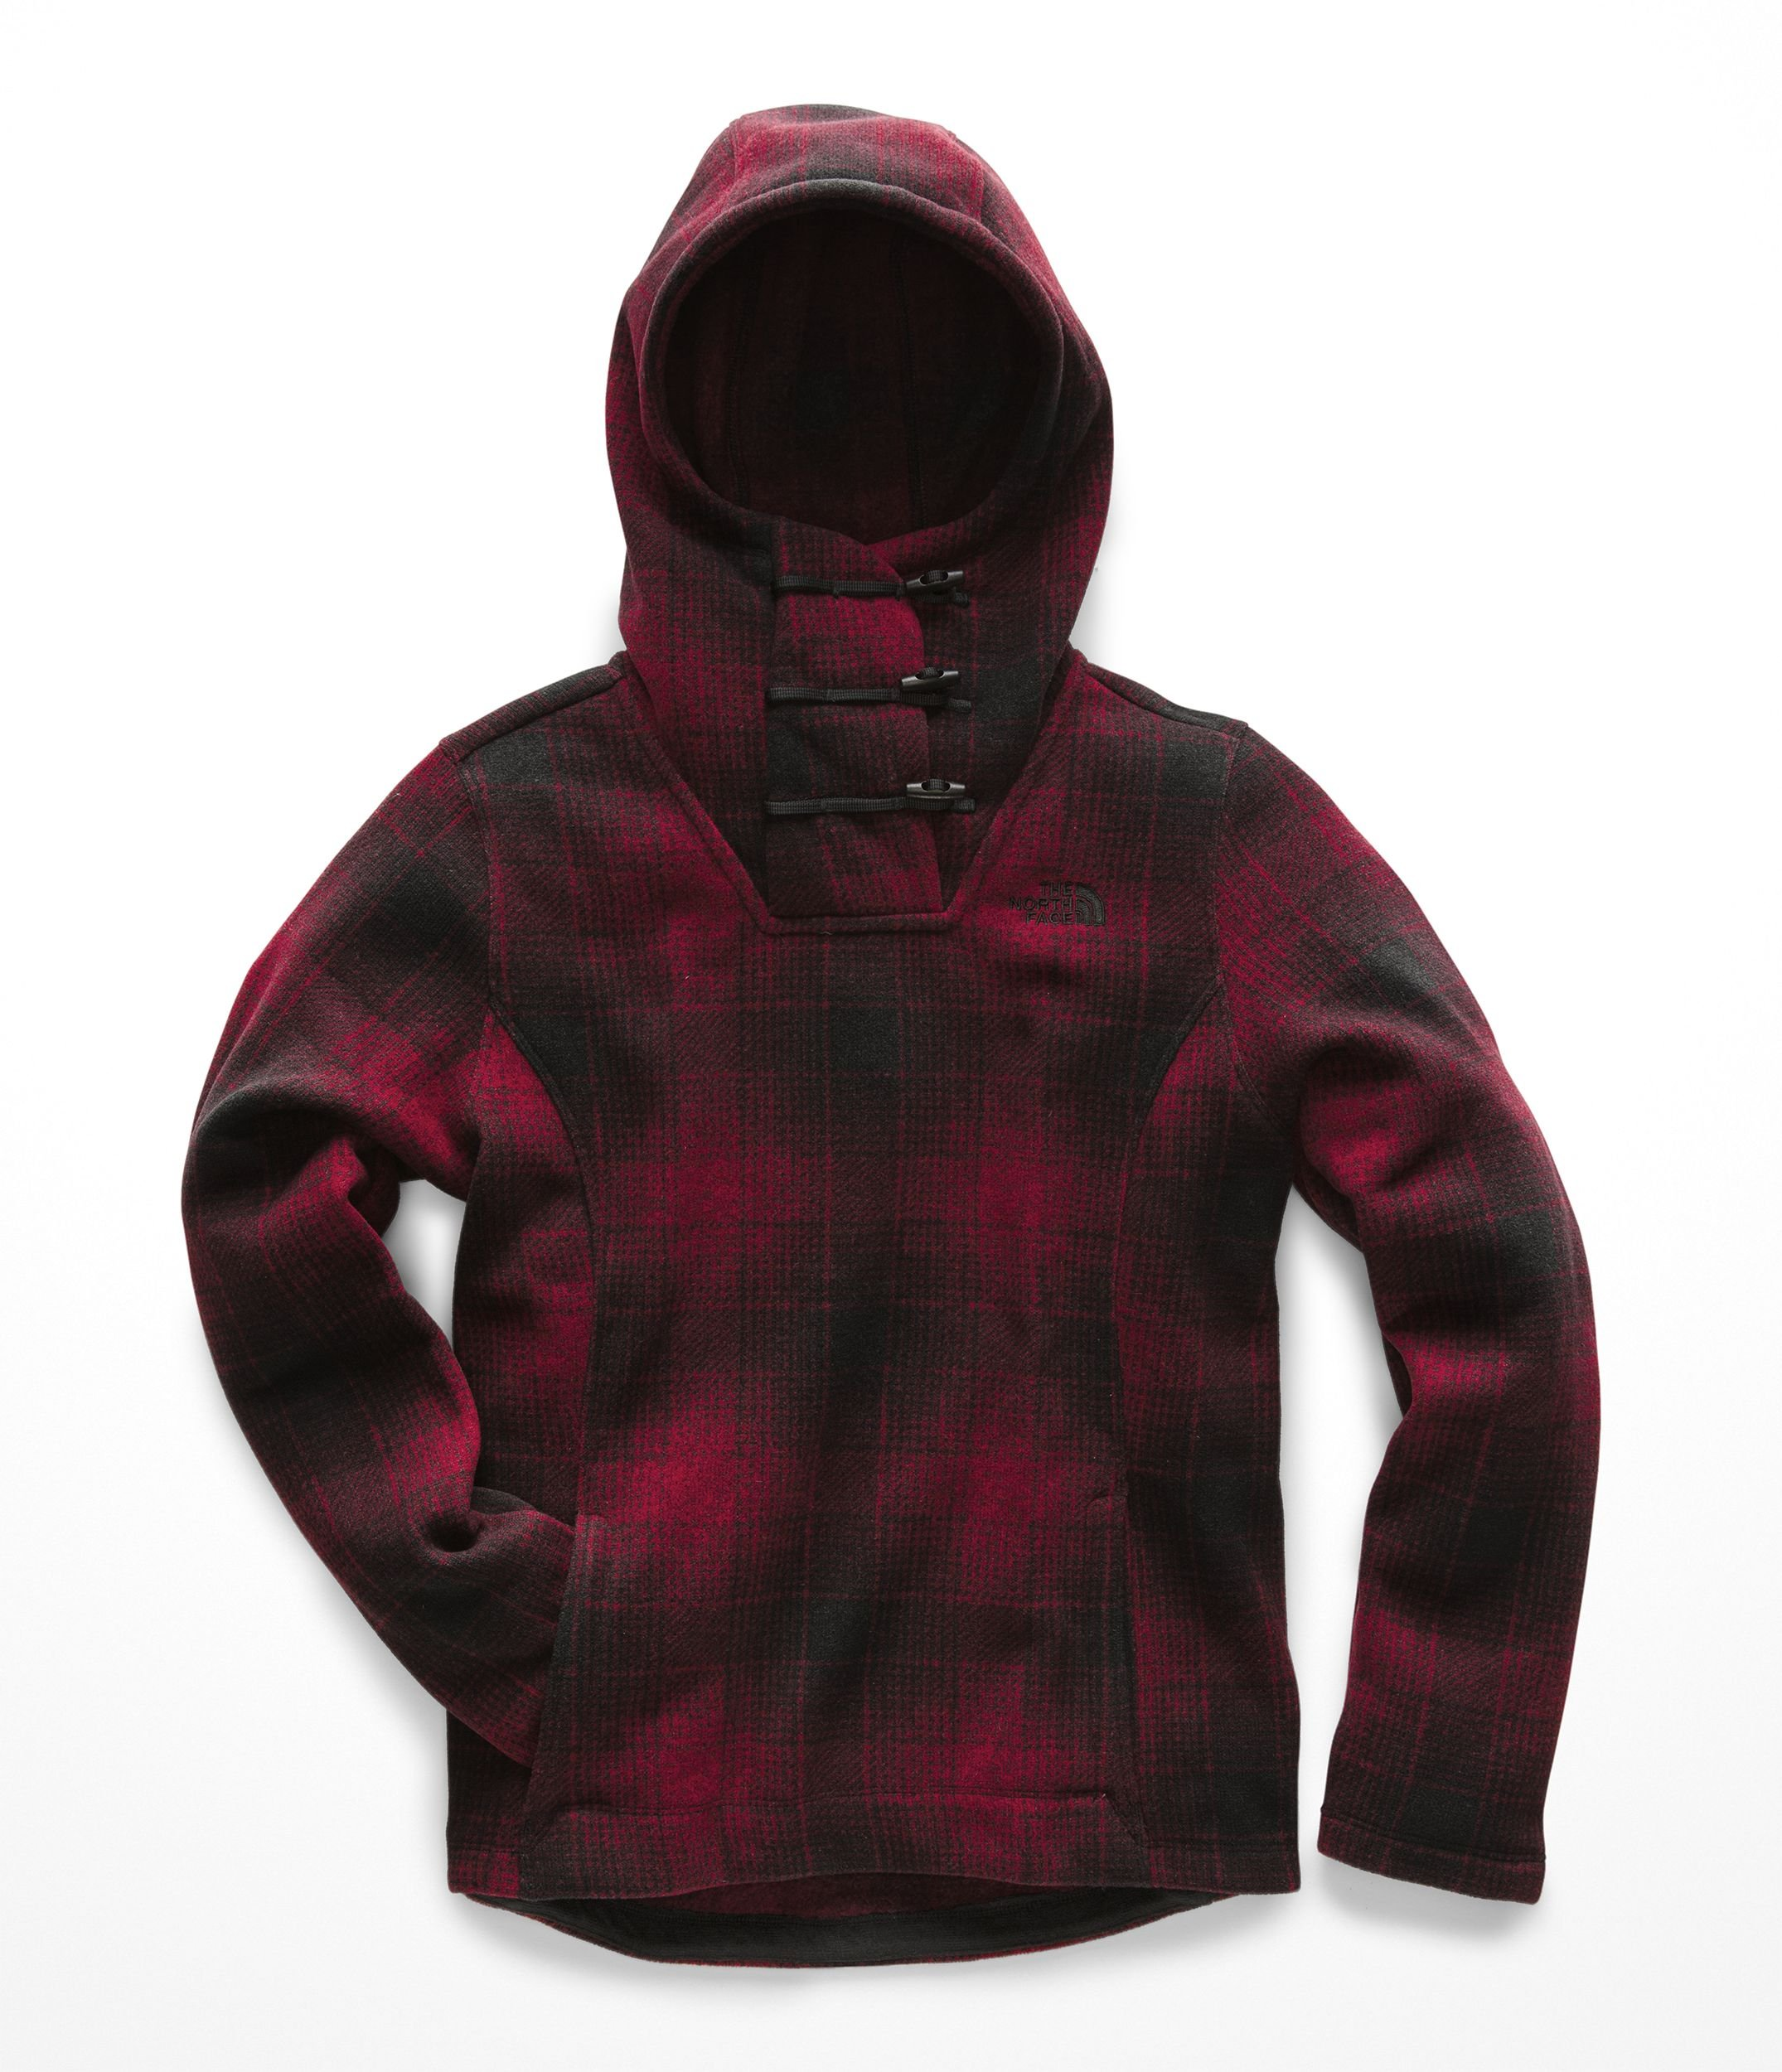 The North Face Women's Crescent Hooded Pullover Rumba Red Ombre Plaid Small Print Medium